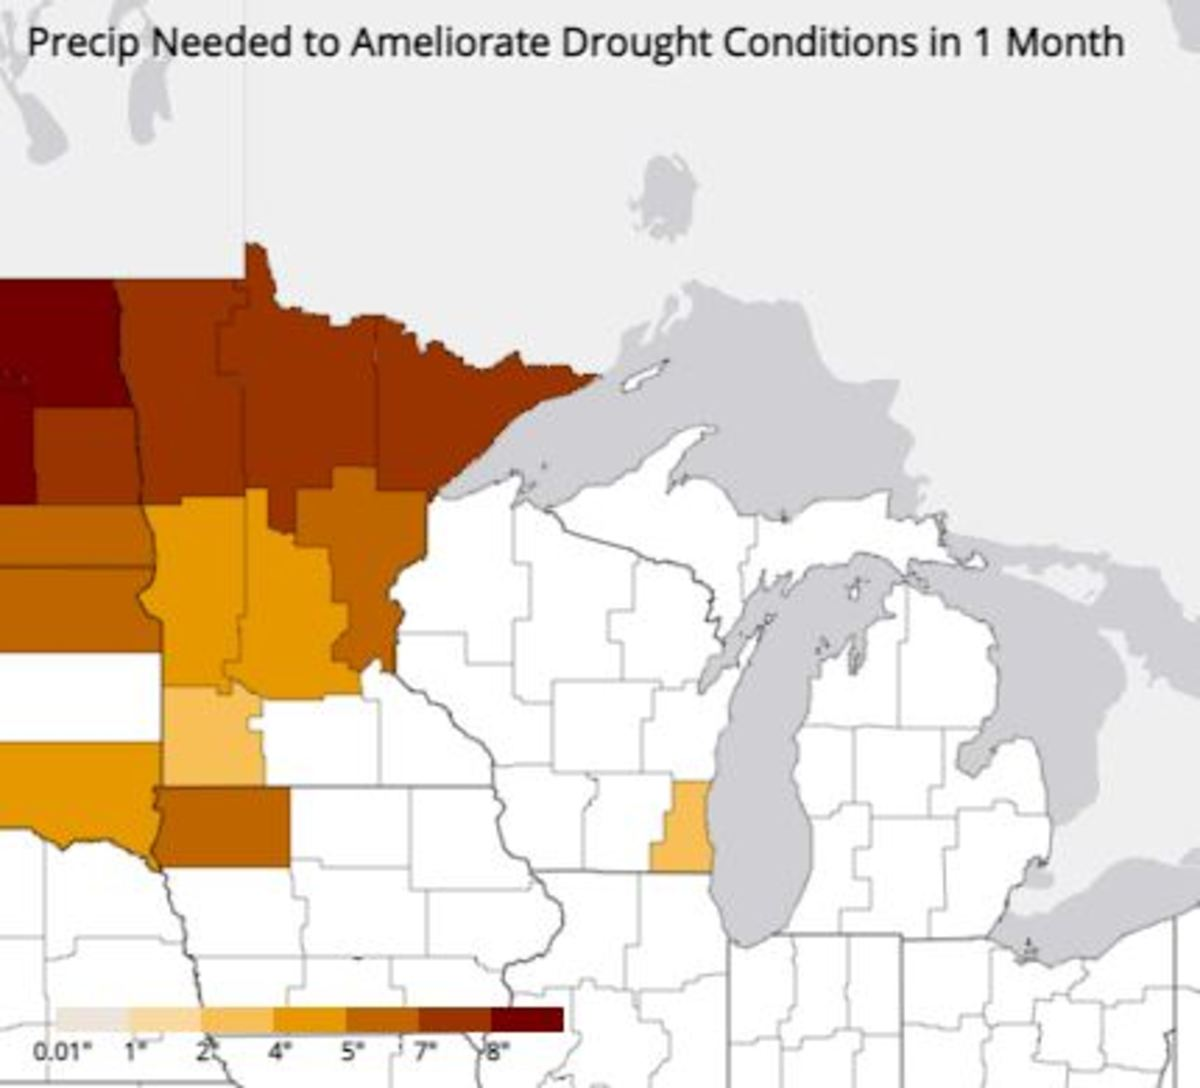 Estimated amount of precipitation needed to ameliorate the severity of drought conditions.